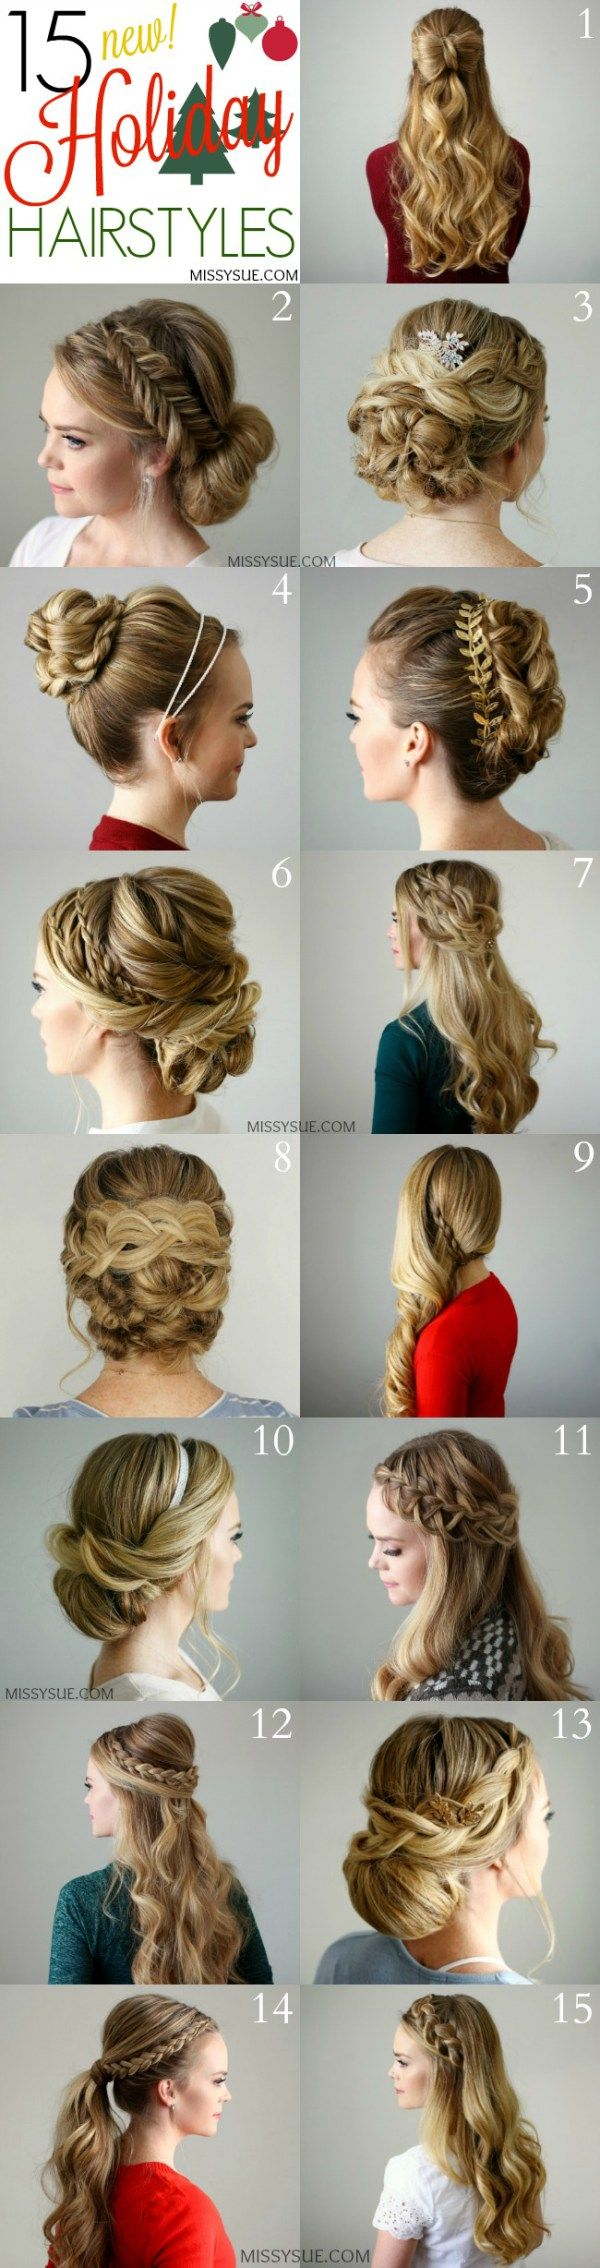 15 Holiday Hairstyles | Women's World | Hair styles, Hair, Holiday hairstyles